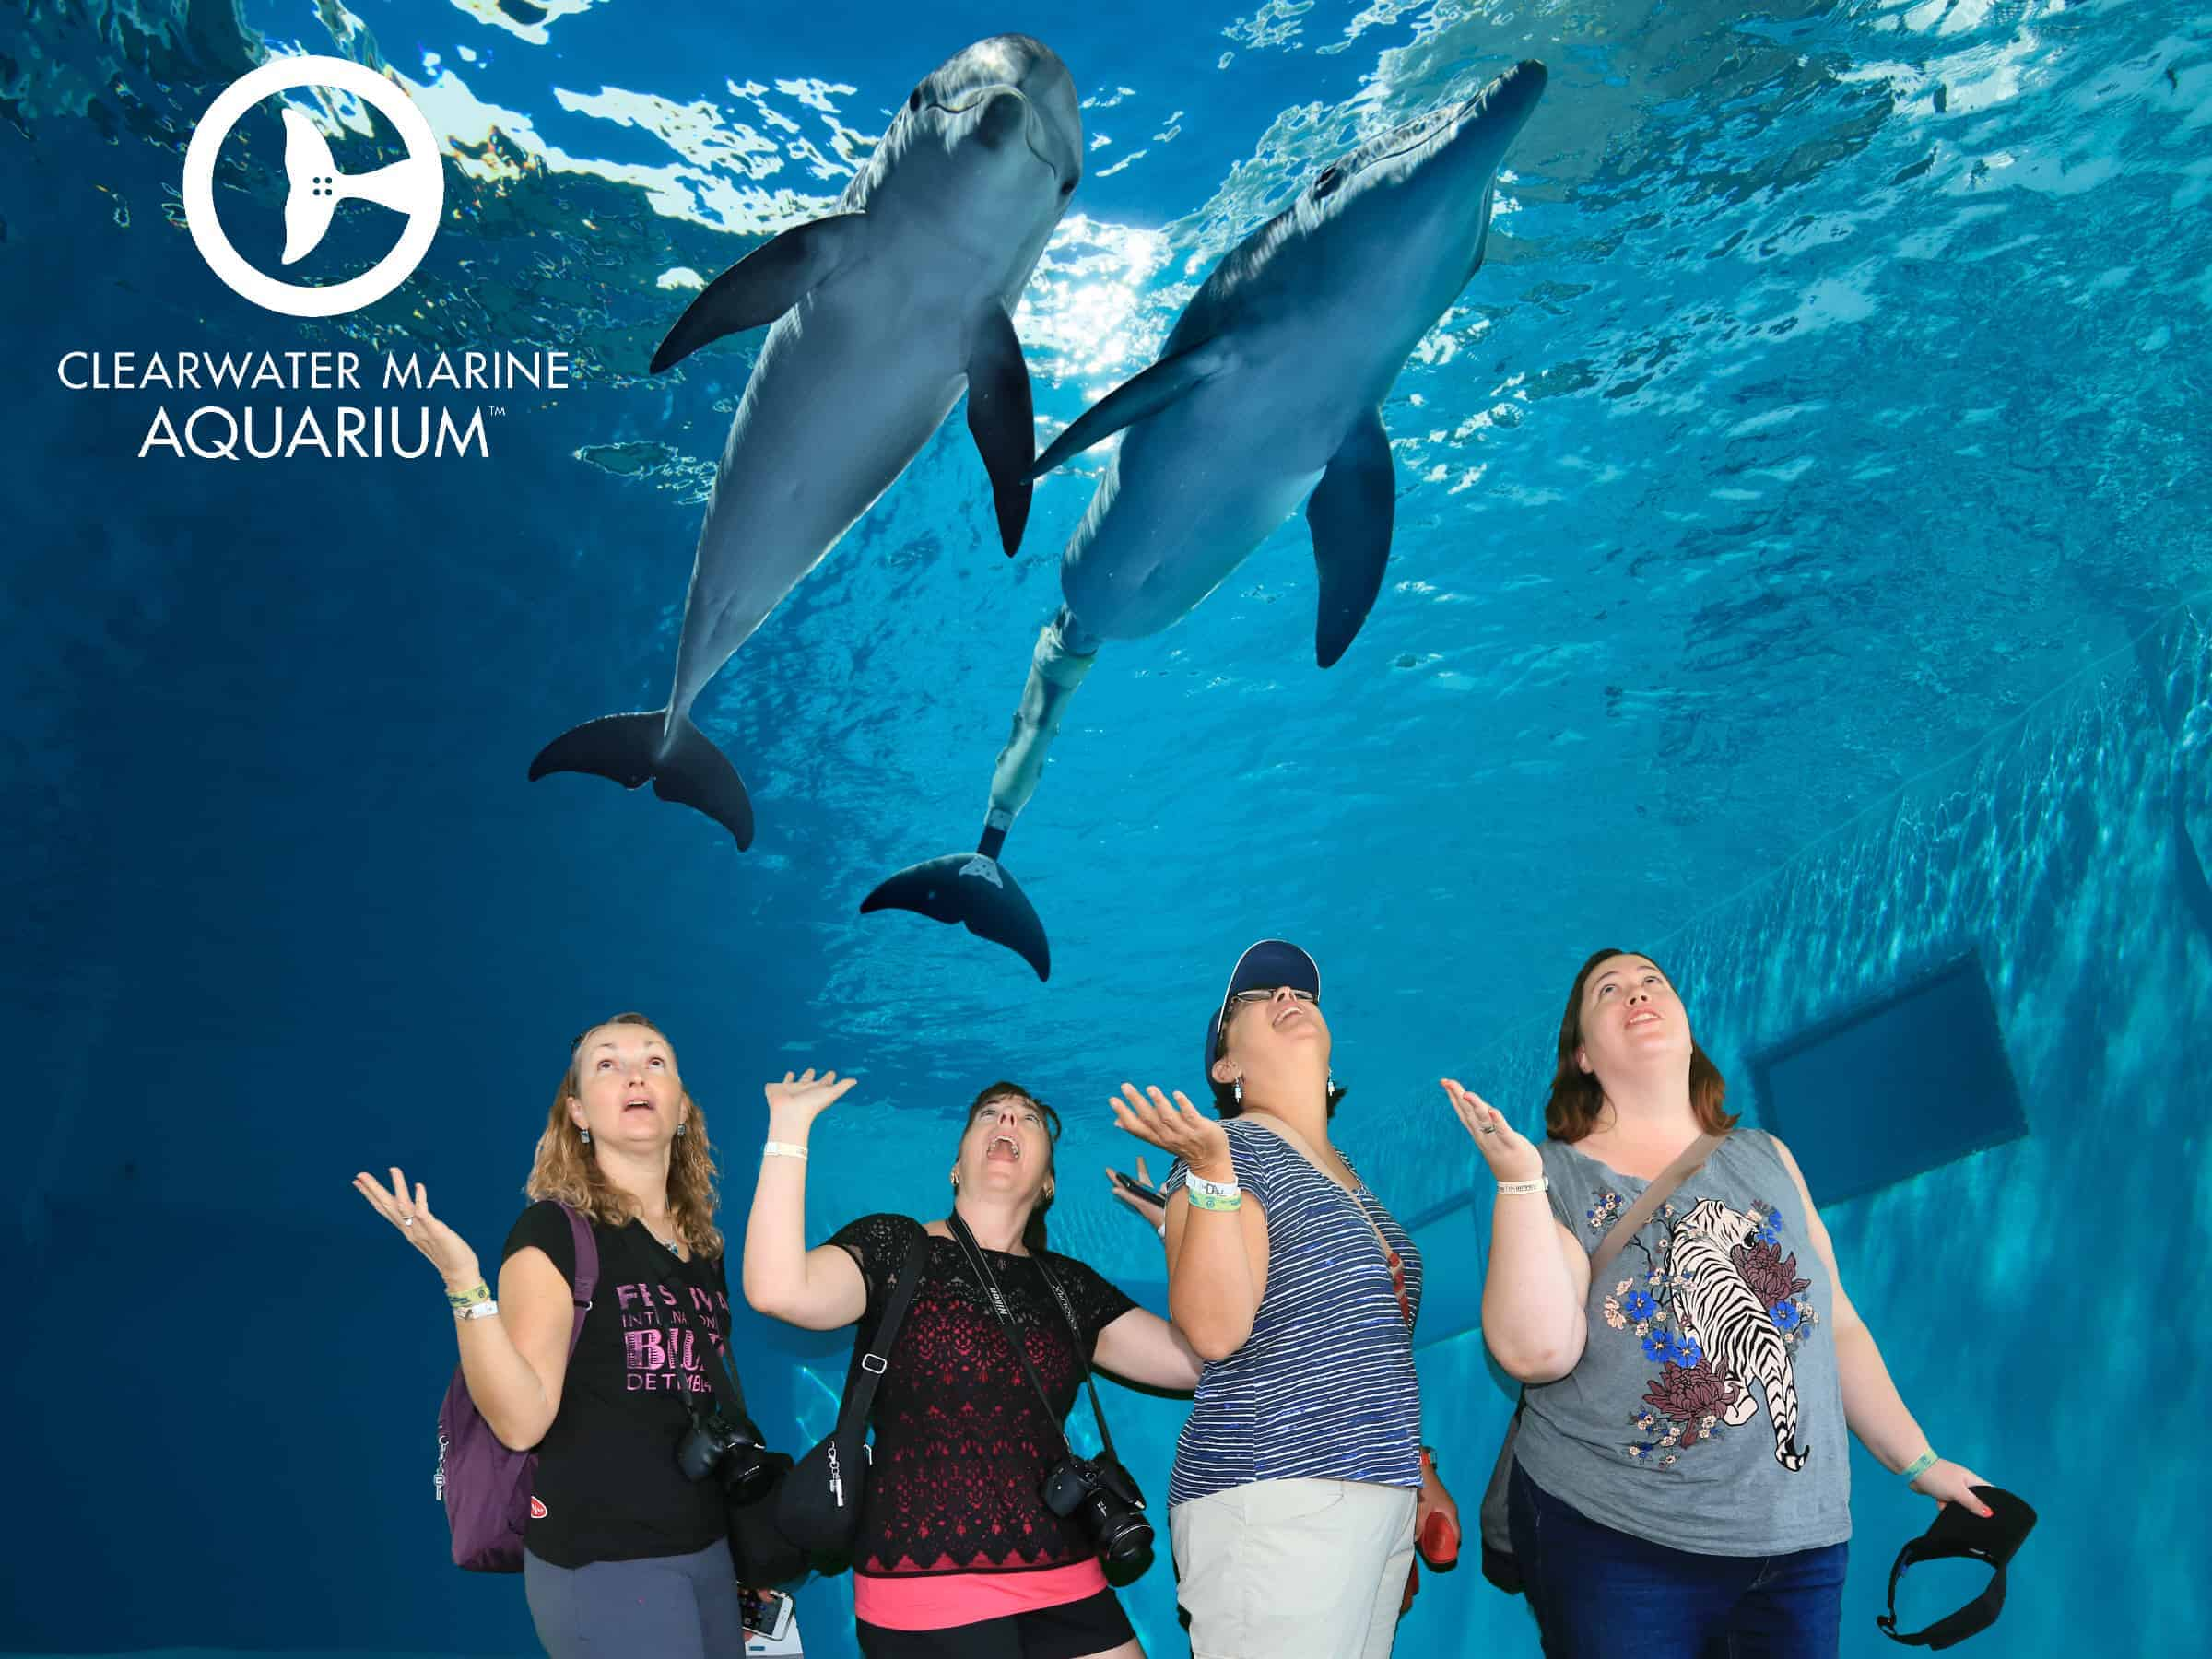 Clearwater Marine Aquarium Group Photos